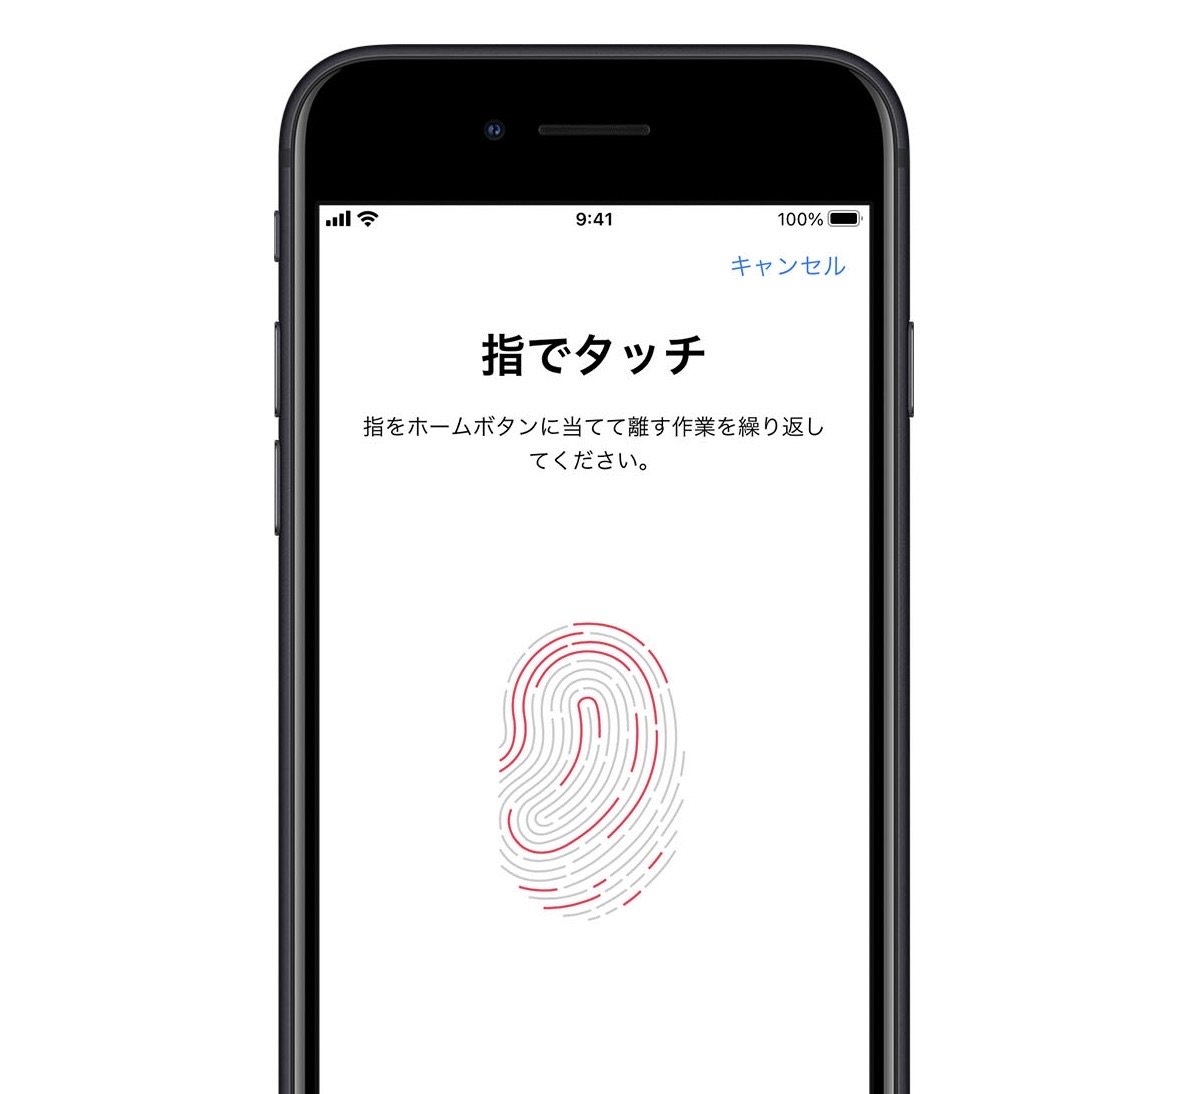 Iphone 2022 touch id